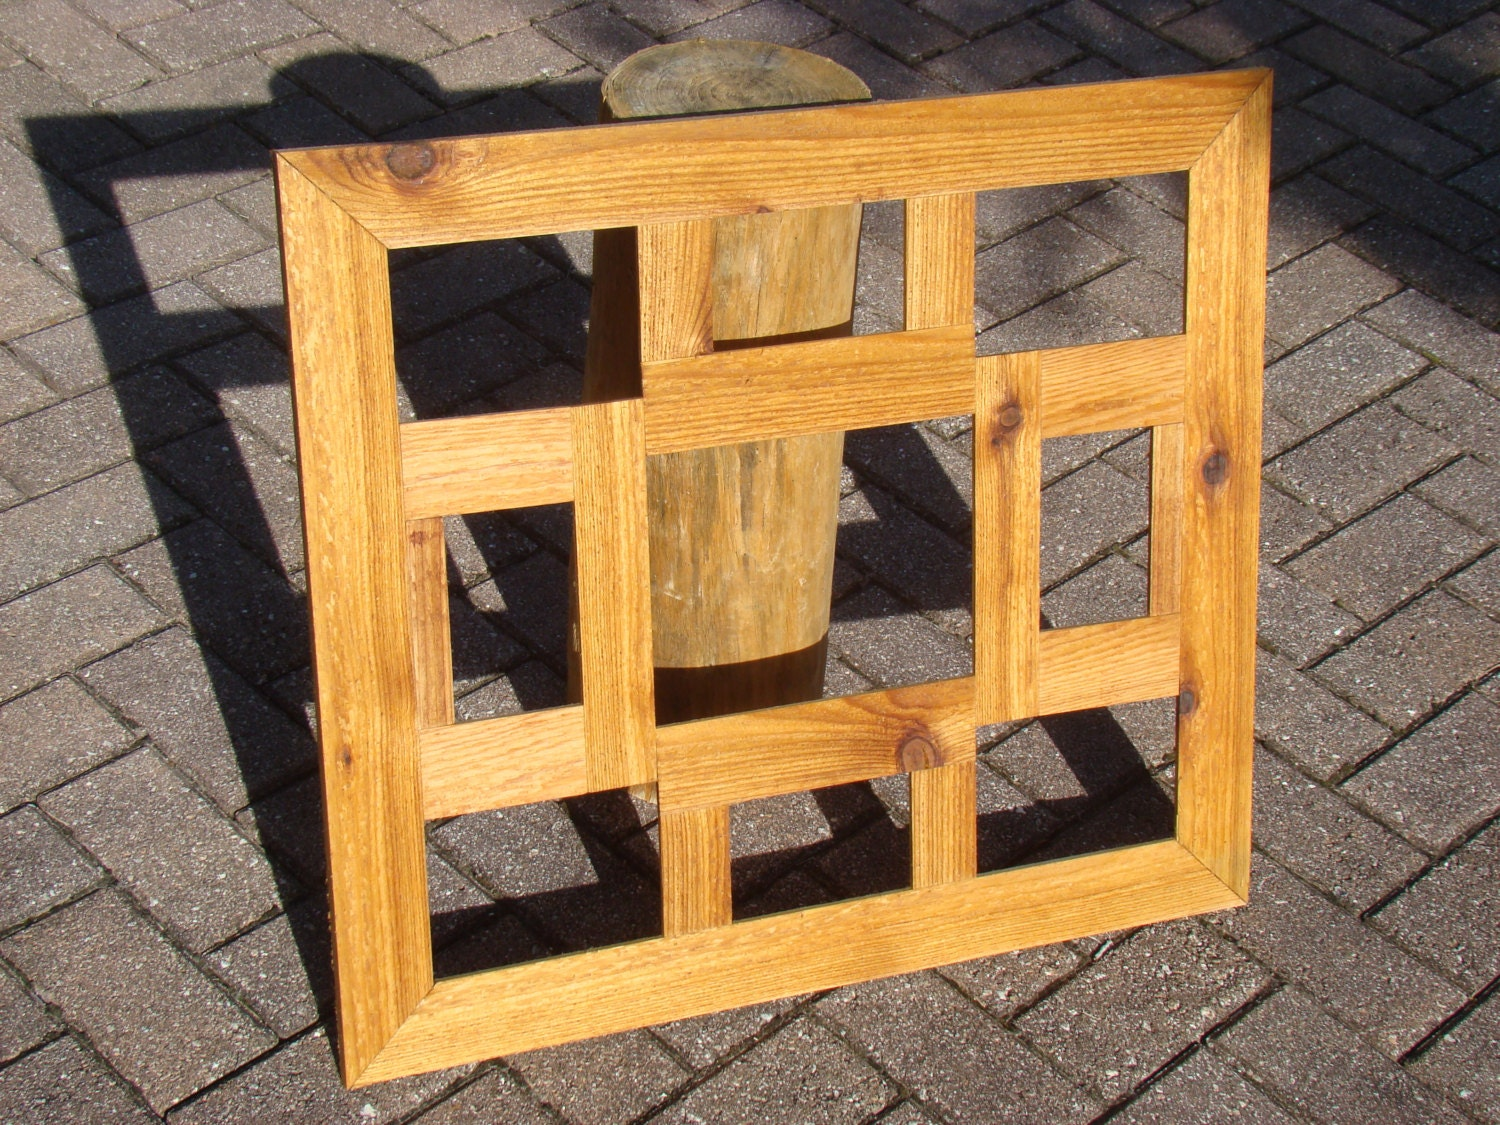 Rustic barn wood collage picture frames - 9 opening frames for 8x10 ...